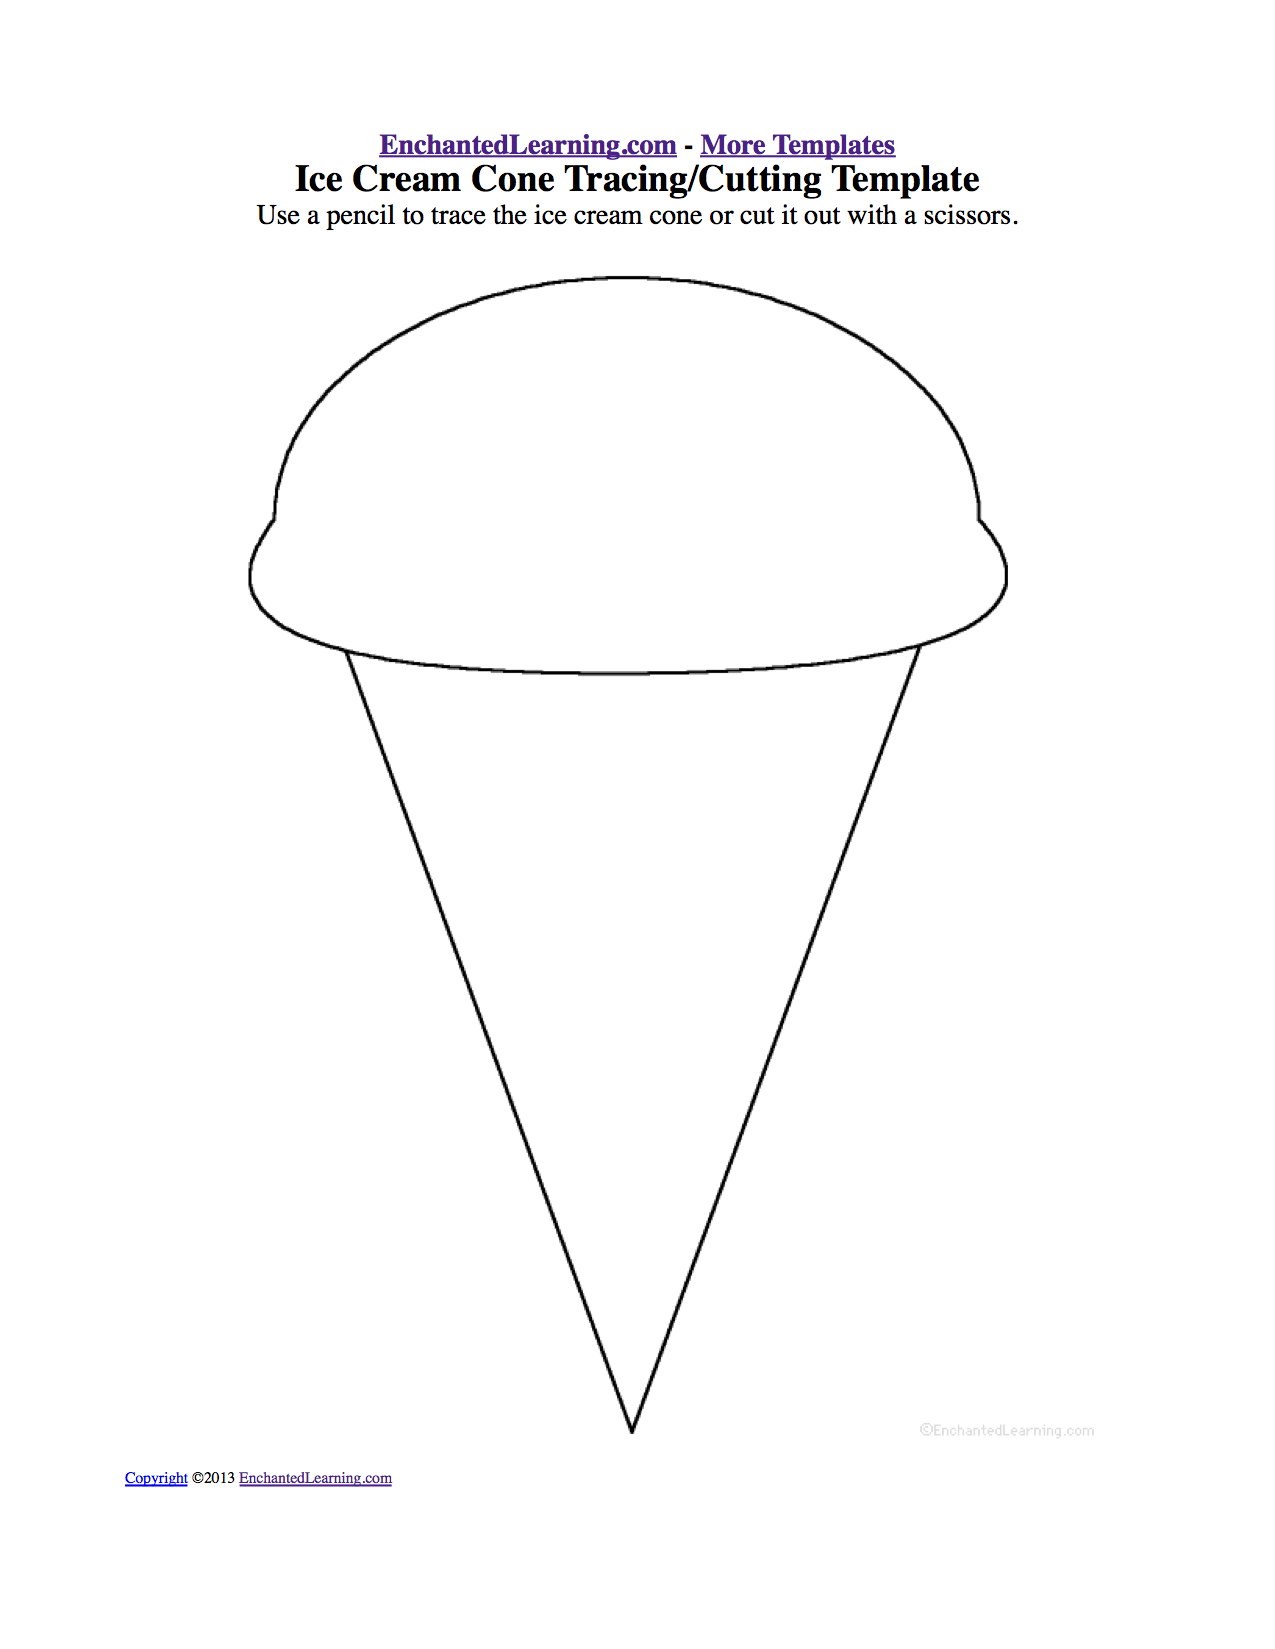 Coloring pictures of ice cream cones - Coloring Pictures Of Ice Cream Cones 71